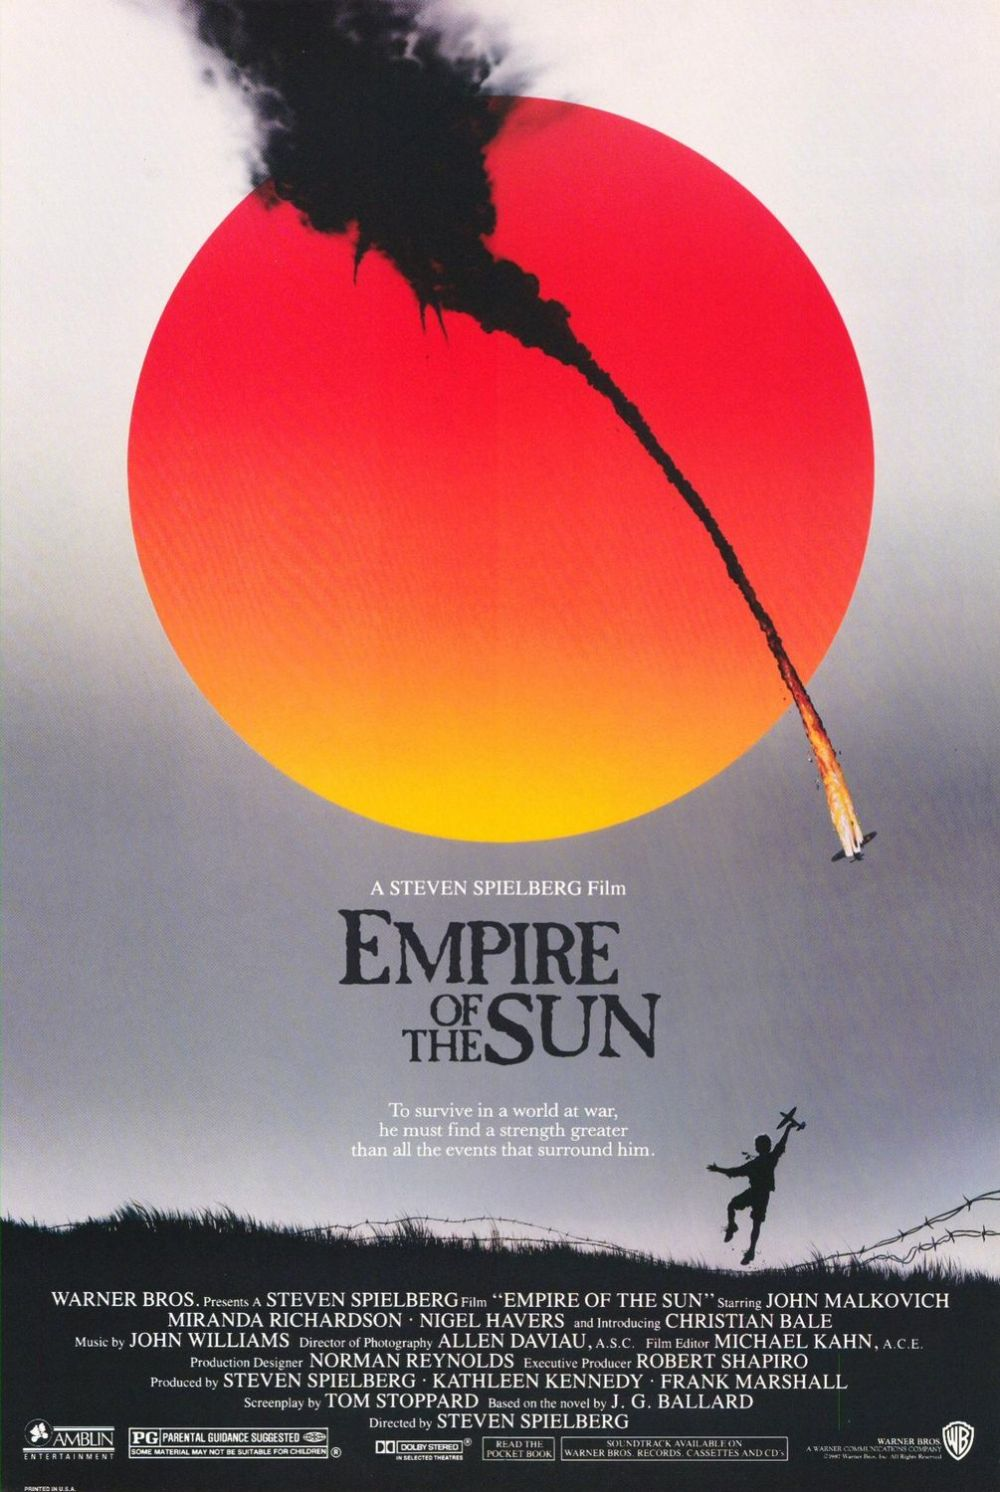 empire-of-the-sun-movie-poster